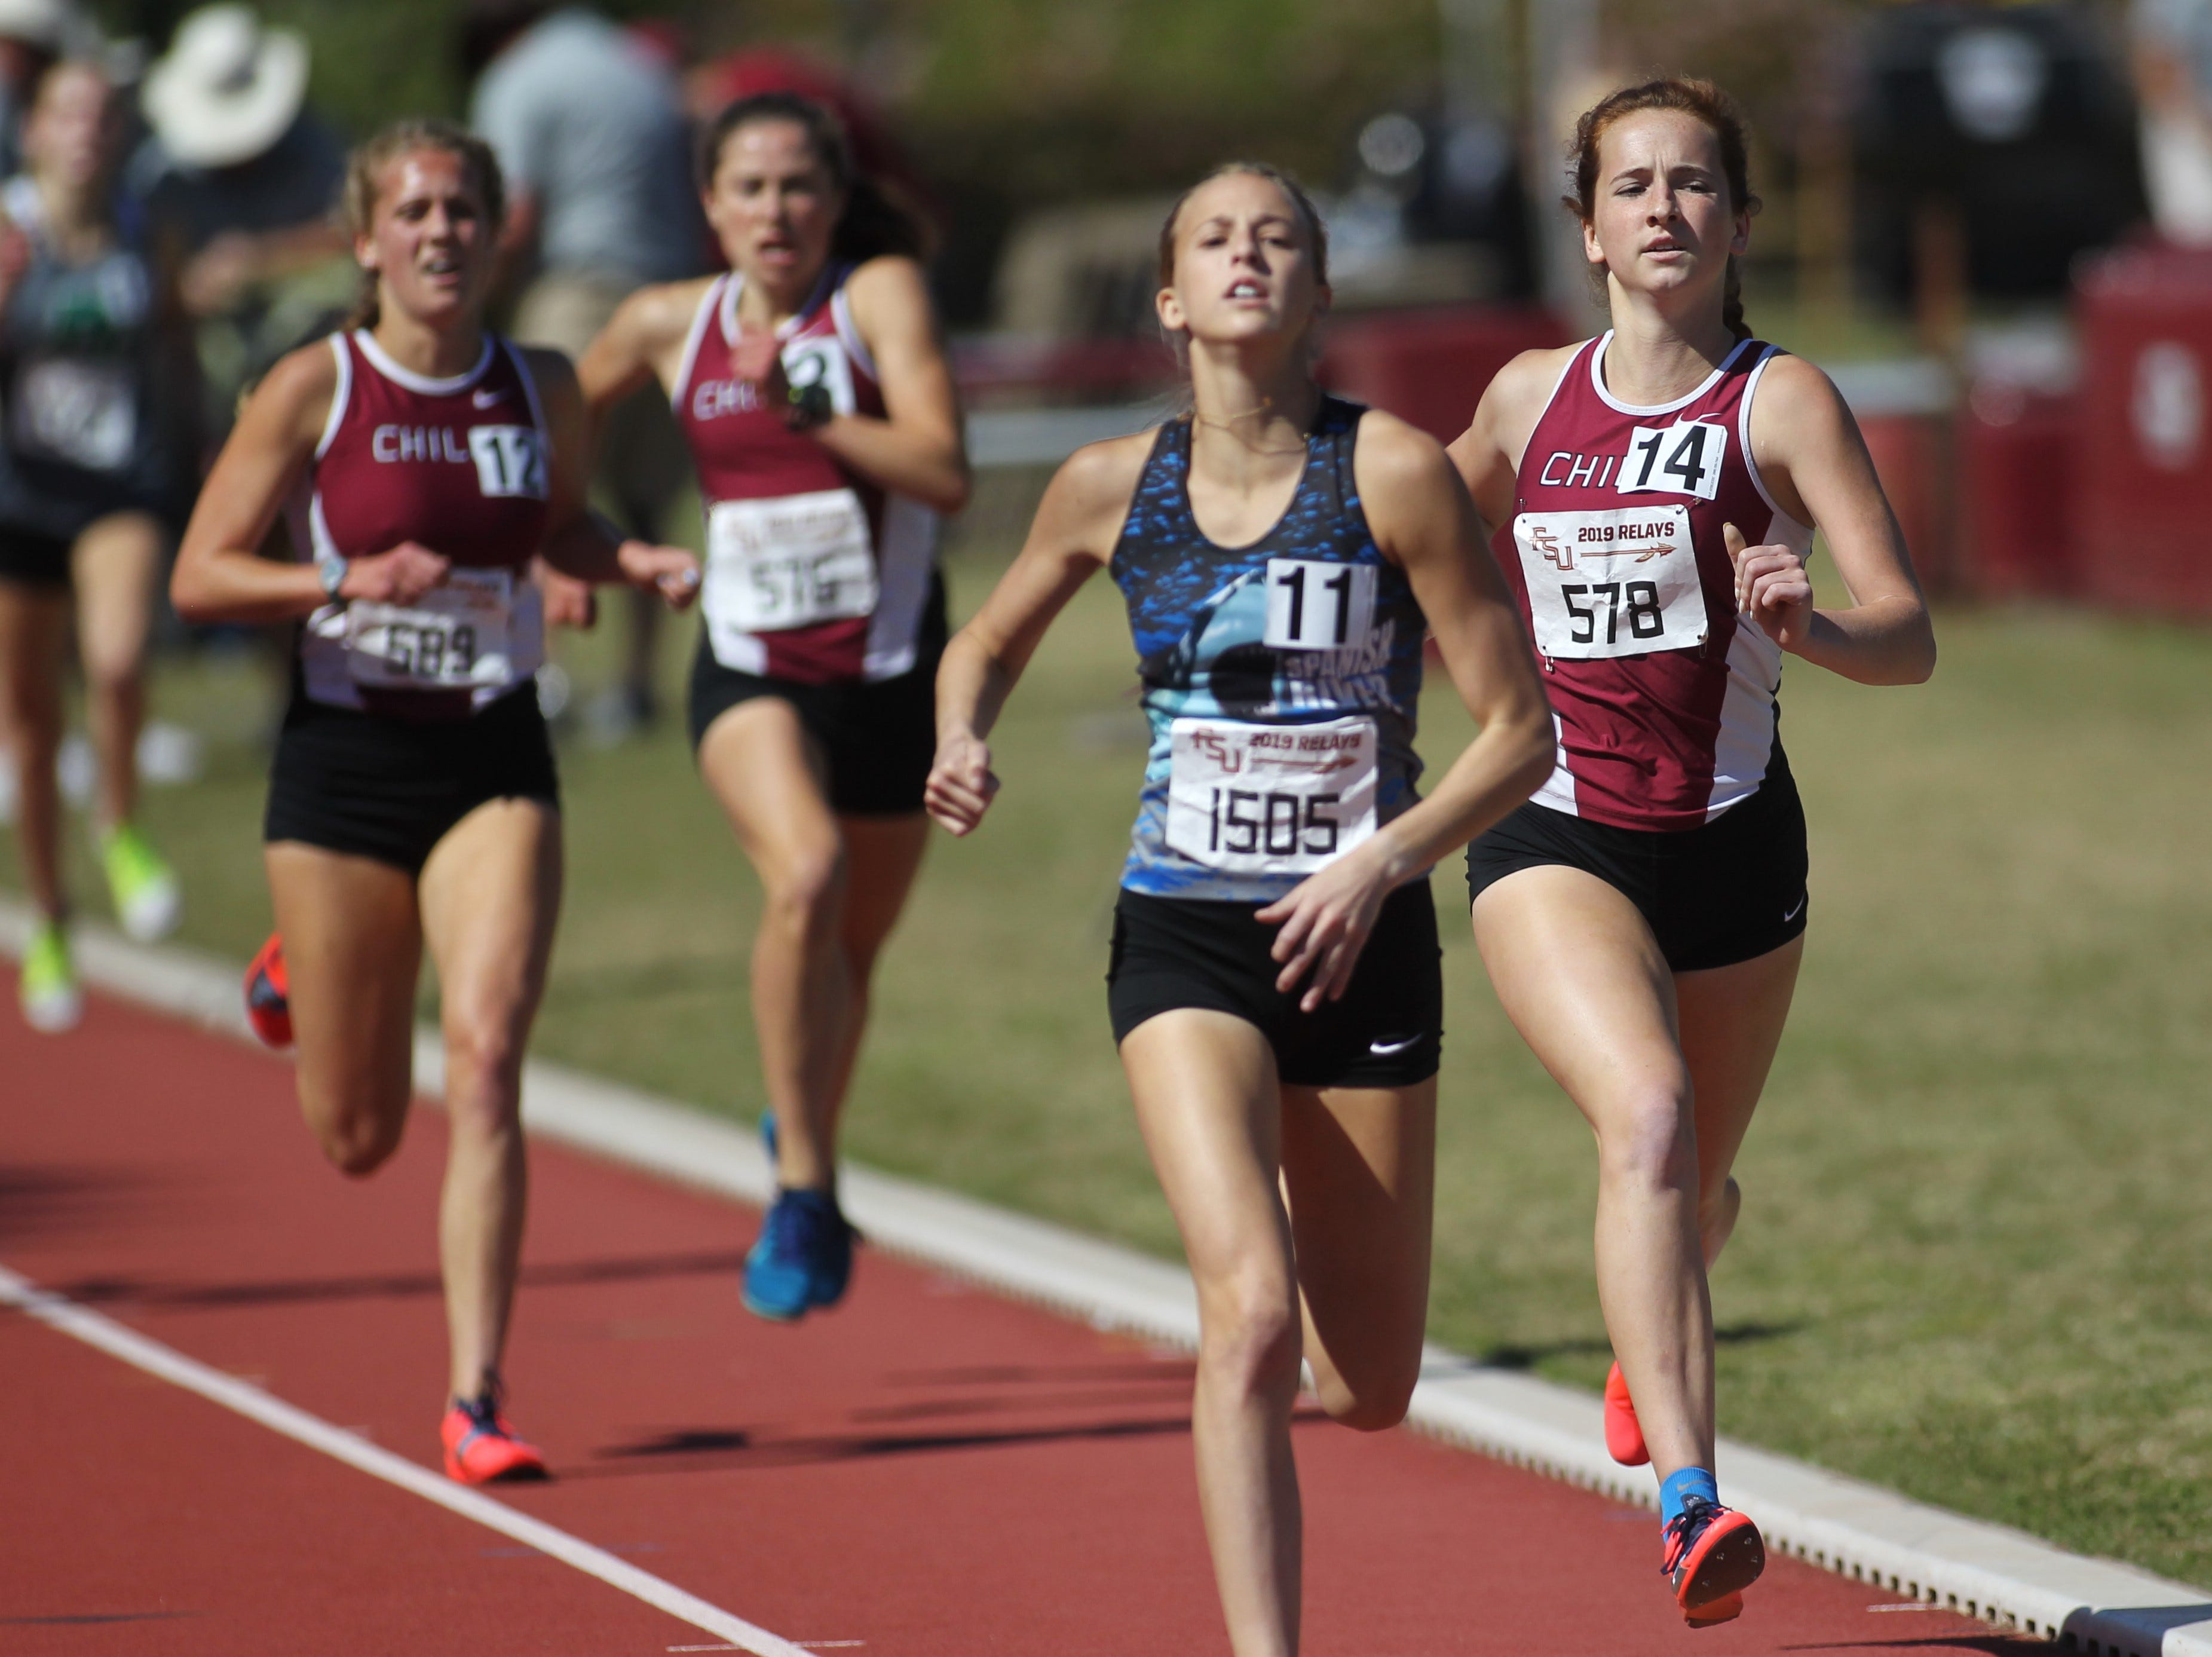 Chiles senior Emily Culley leads teammates Caitlin Wilkey and Alyson Churchill into the finish of the 1600 Invite during the 40th annual FSU Relays at Mike Long Track on Saturday, March 23, 2019. All three ran sub-5:00.